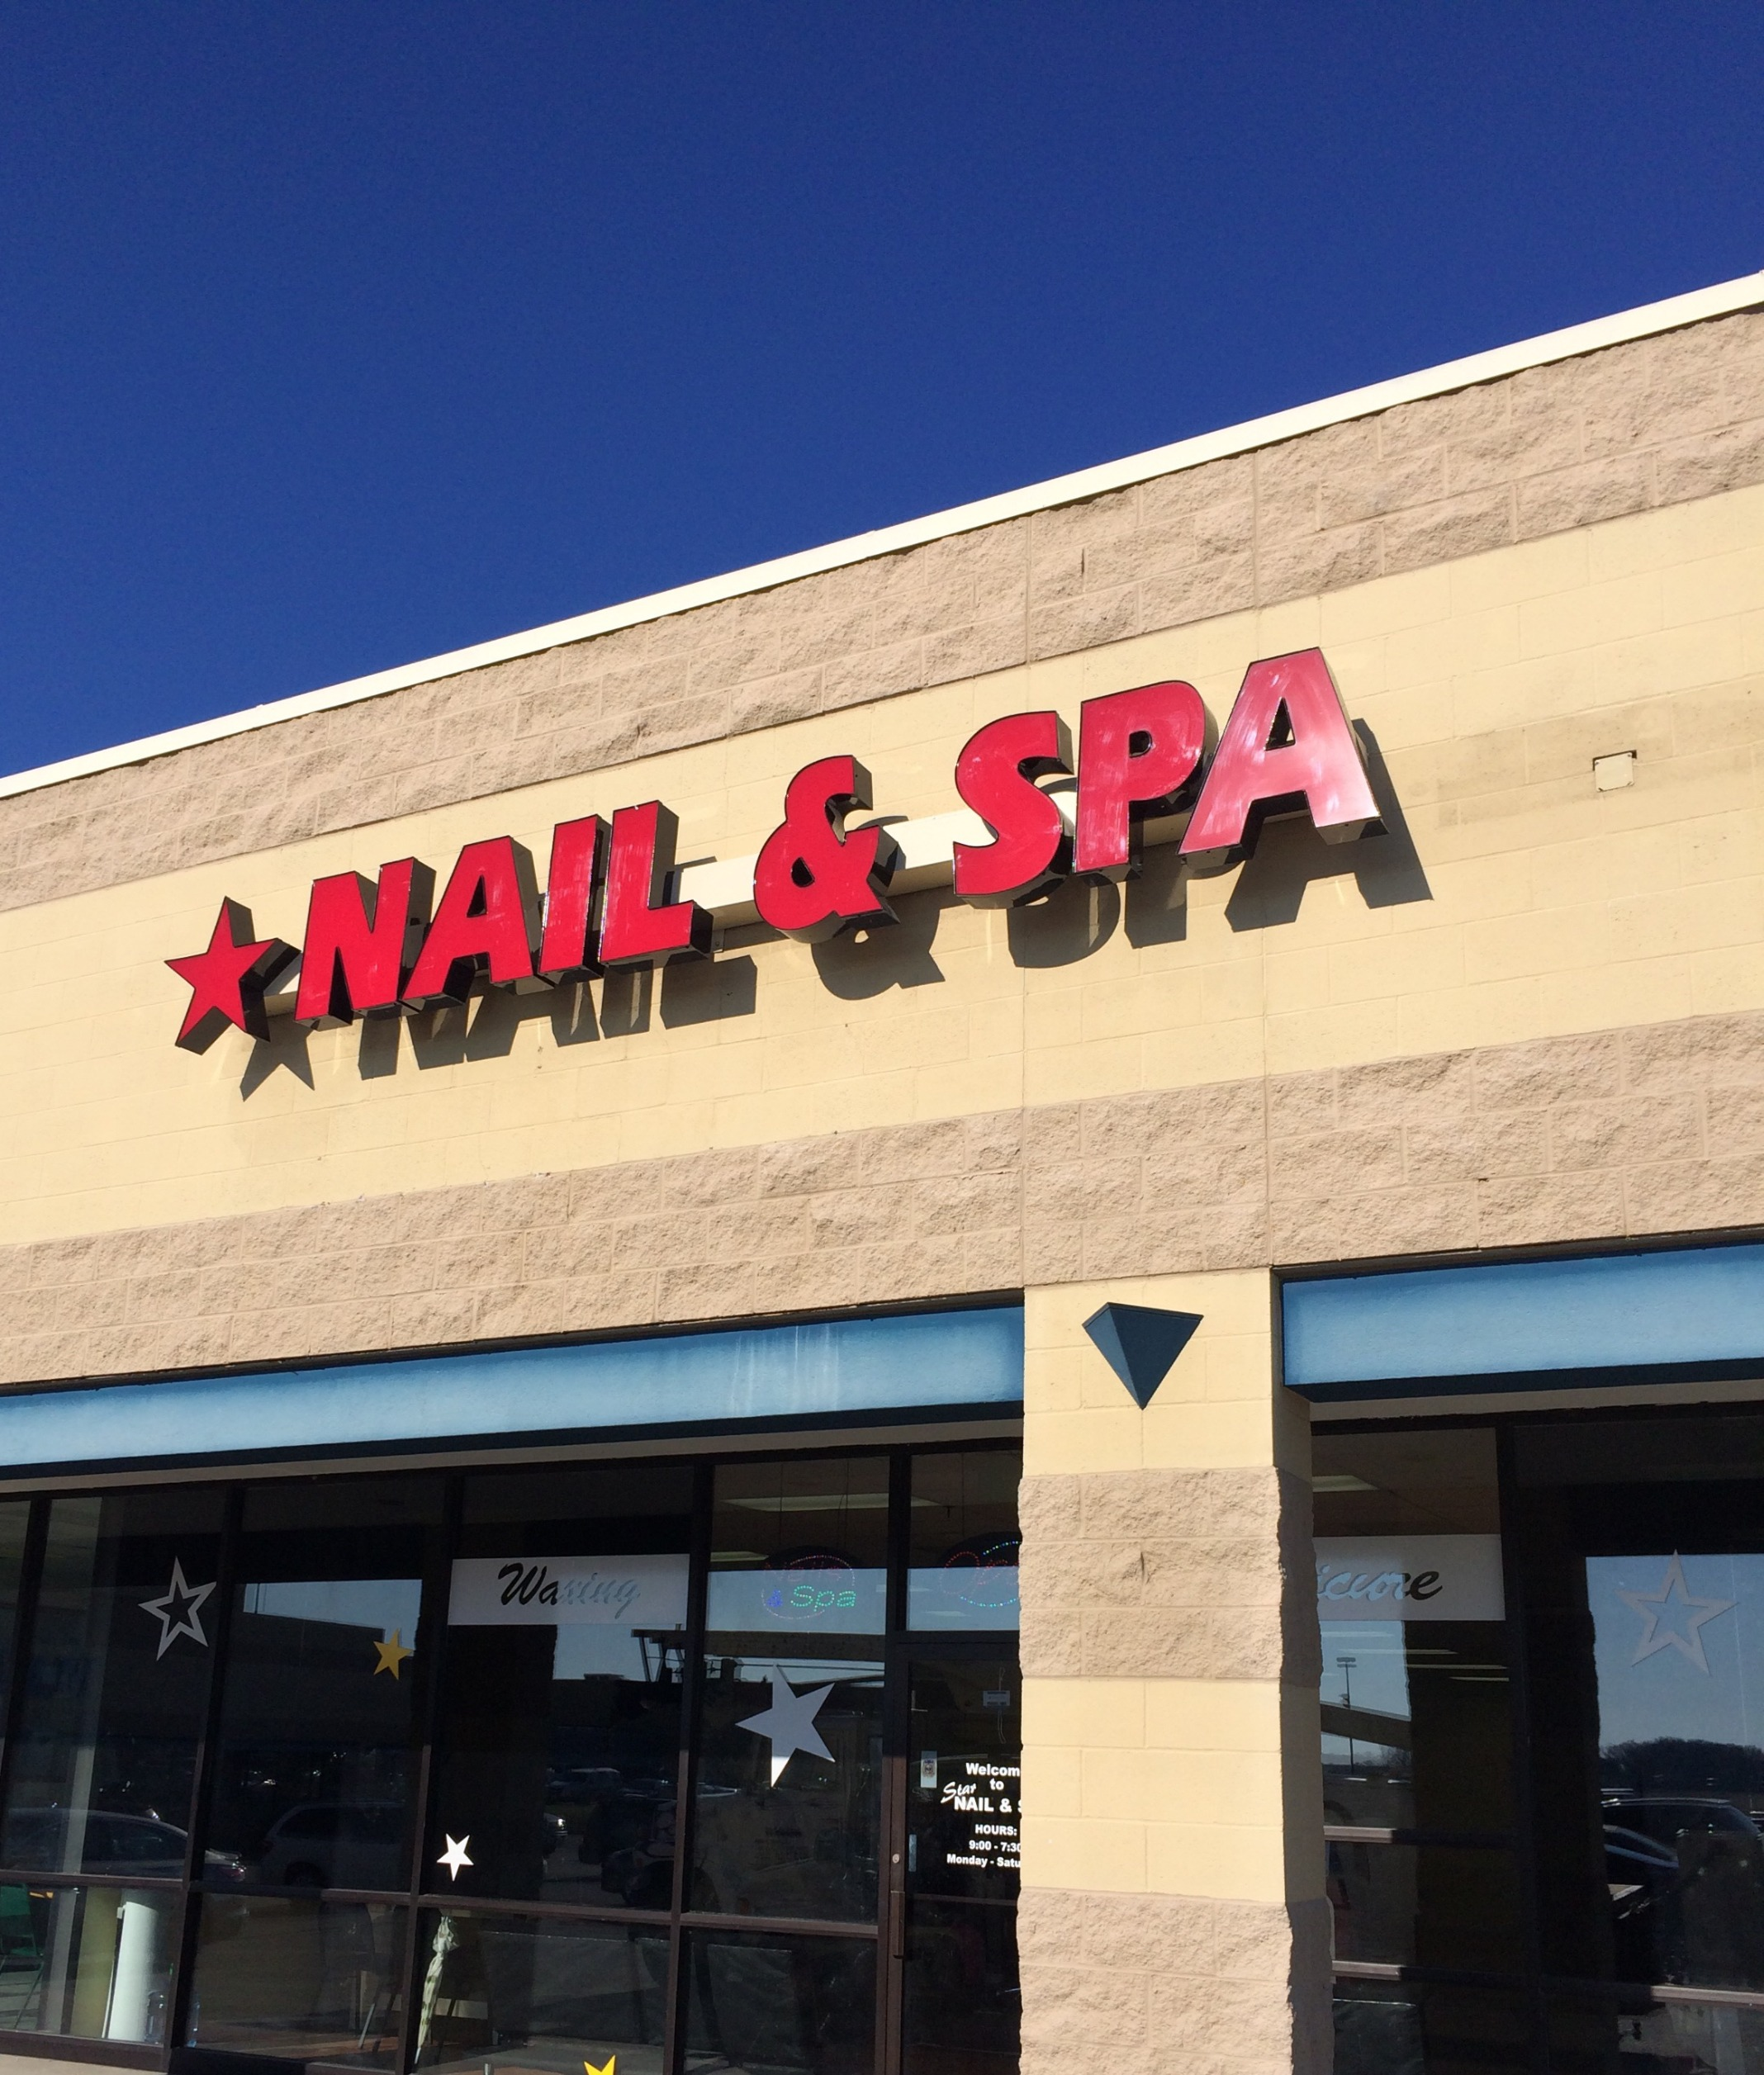 Nail & Spa Complete.jpg